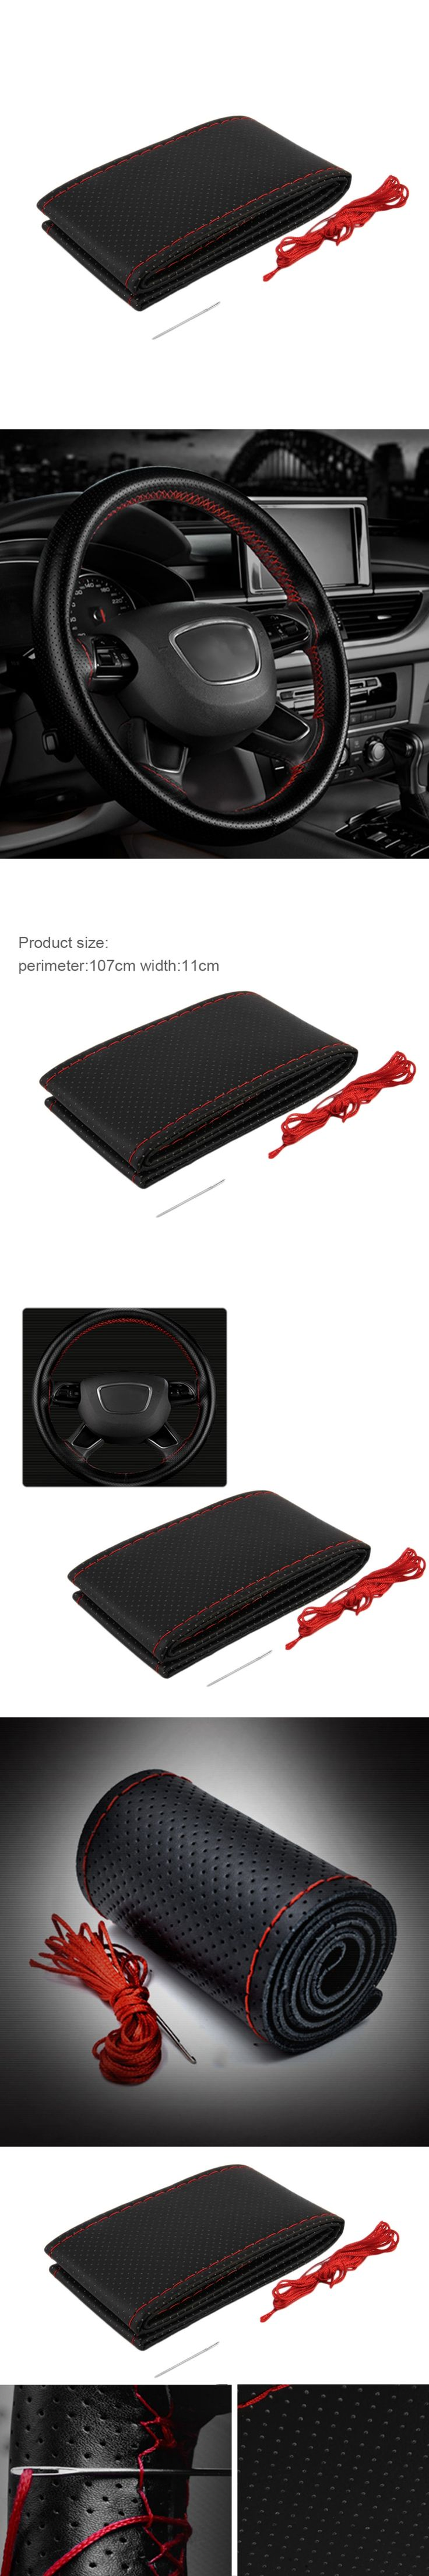 Newest 3 Color DIY Texture Soft Auto Car Steering Wheel Cover With Needles And Thread Artificial Leather Car Covers Car-styling